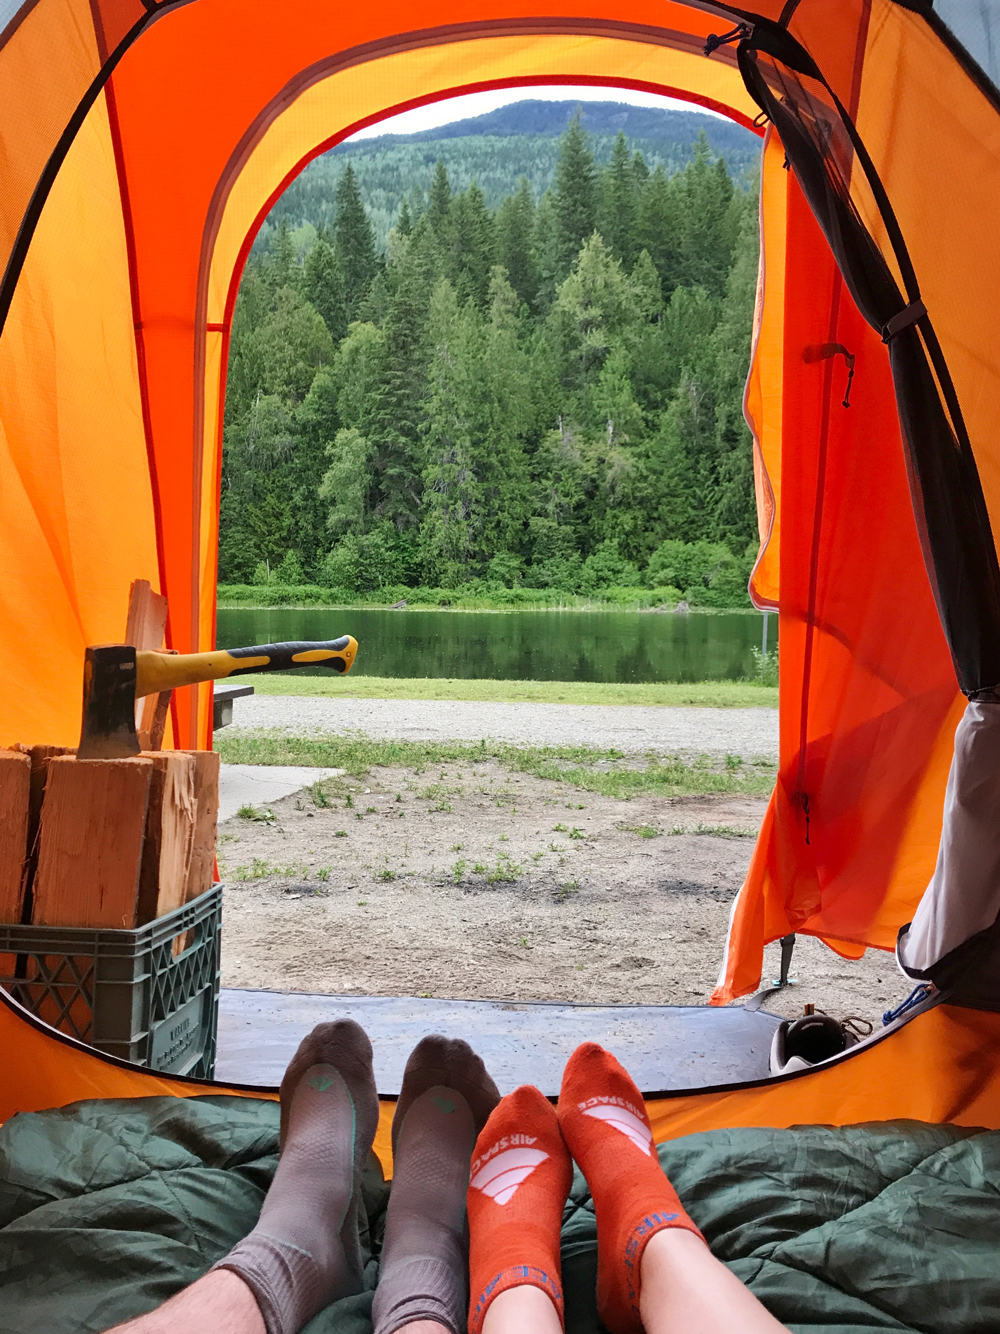 Camping at Williamson Lake campground in Revelstoke, British Columbia